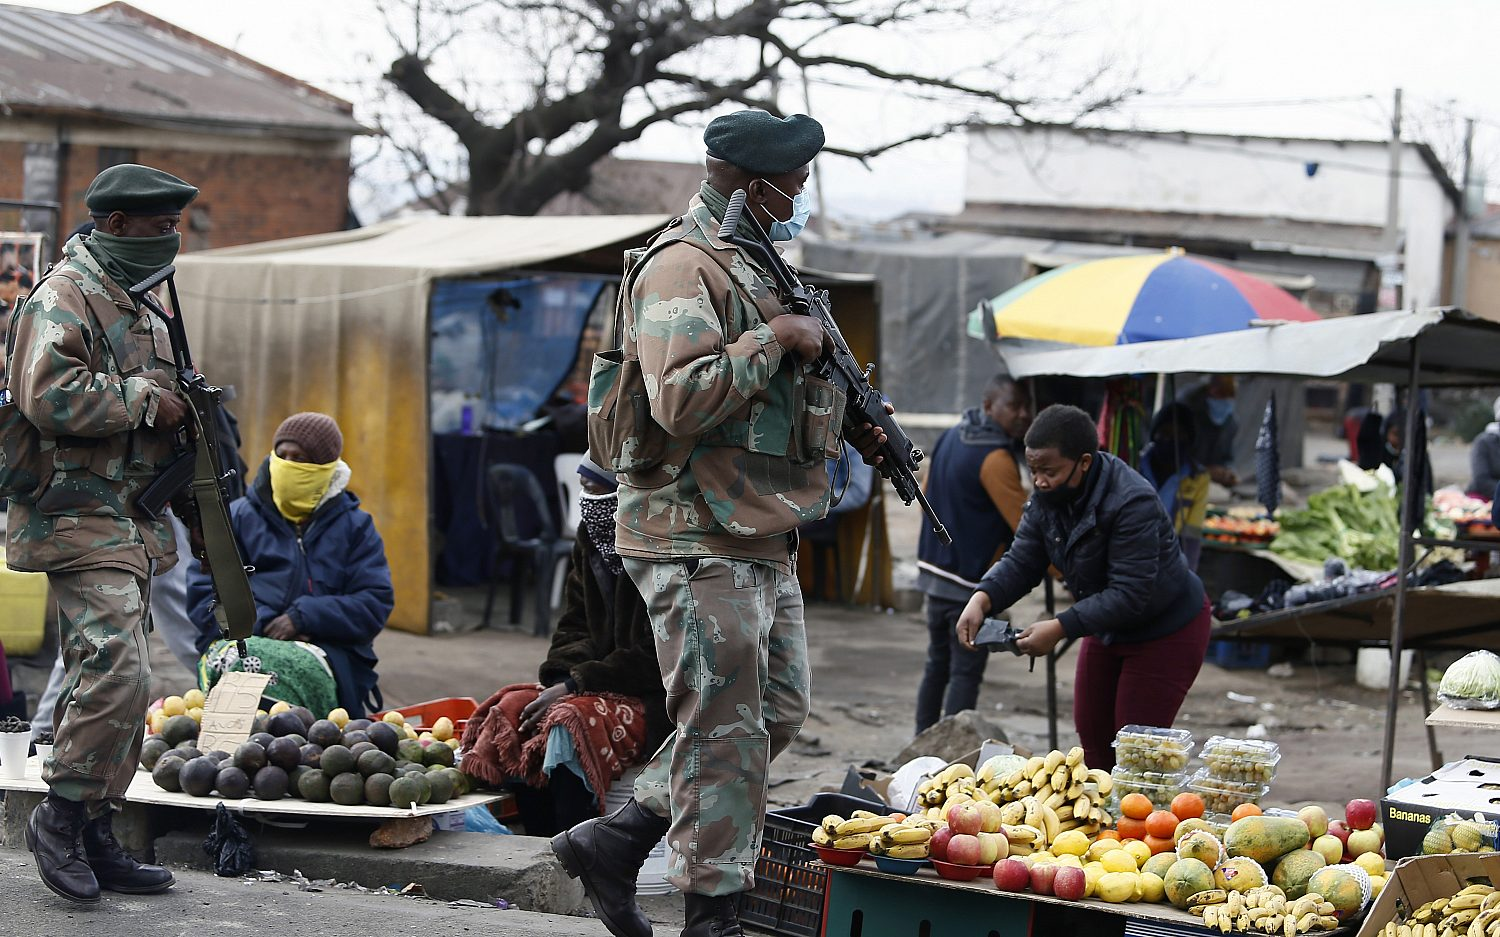 South Africa scales up security presence